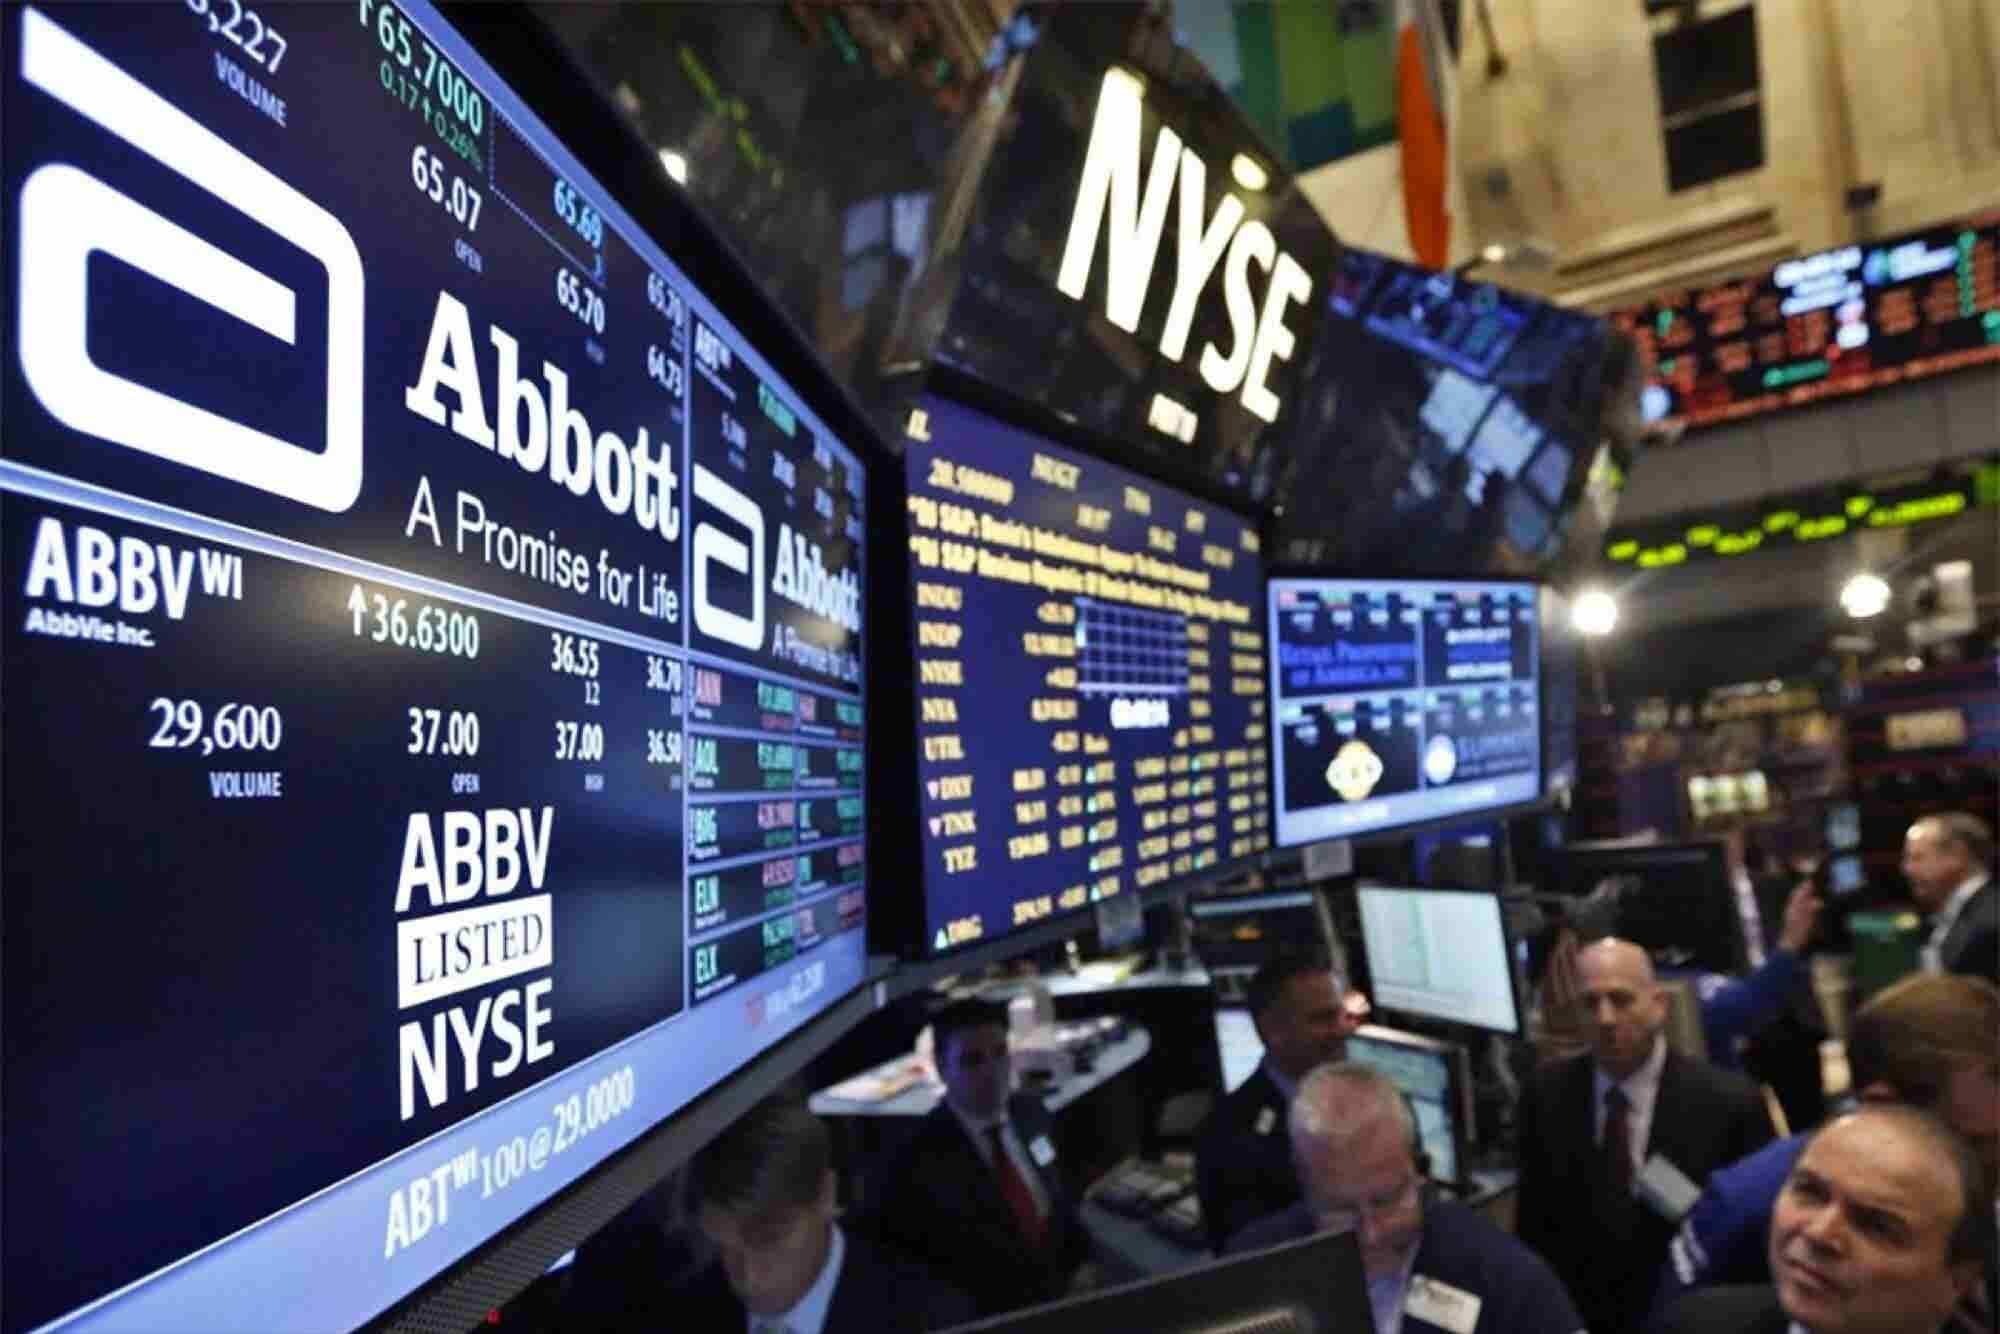 Abbott to Buy St. Jude for $25 Billion to Boost Heart Devices